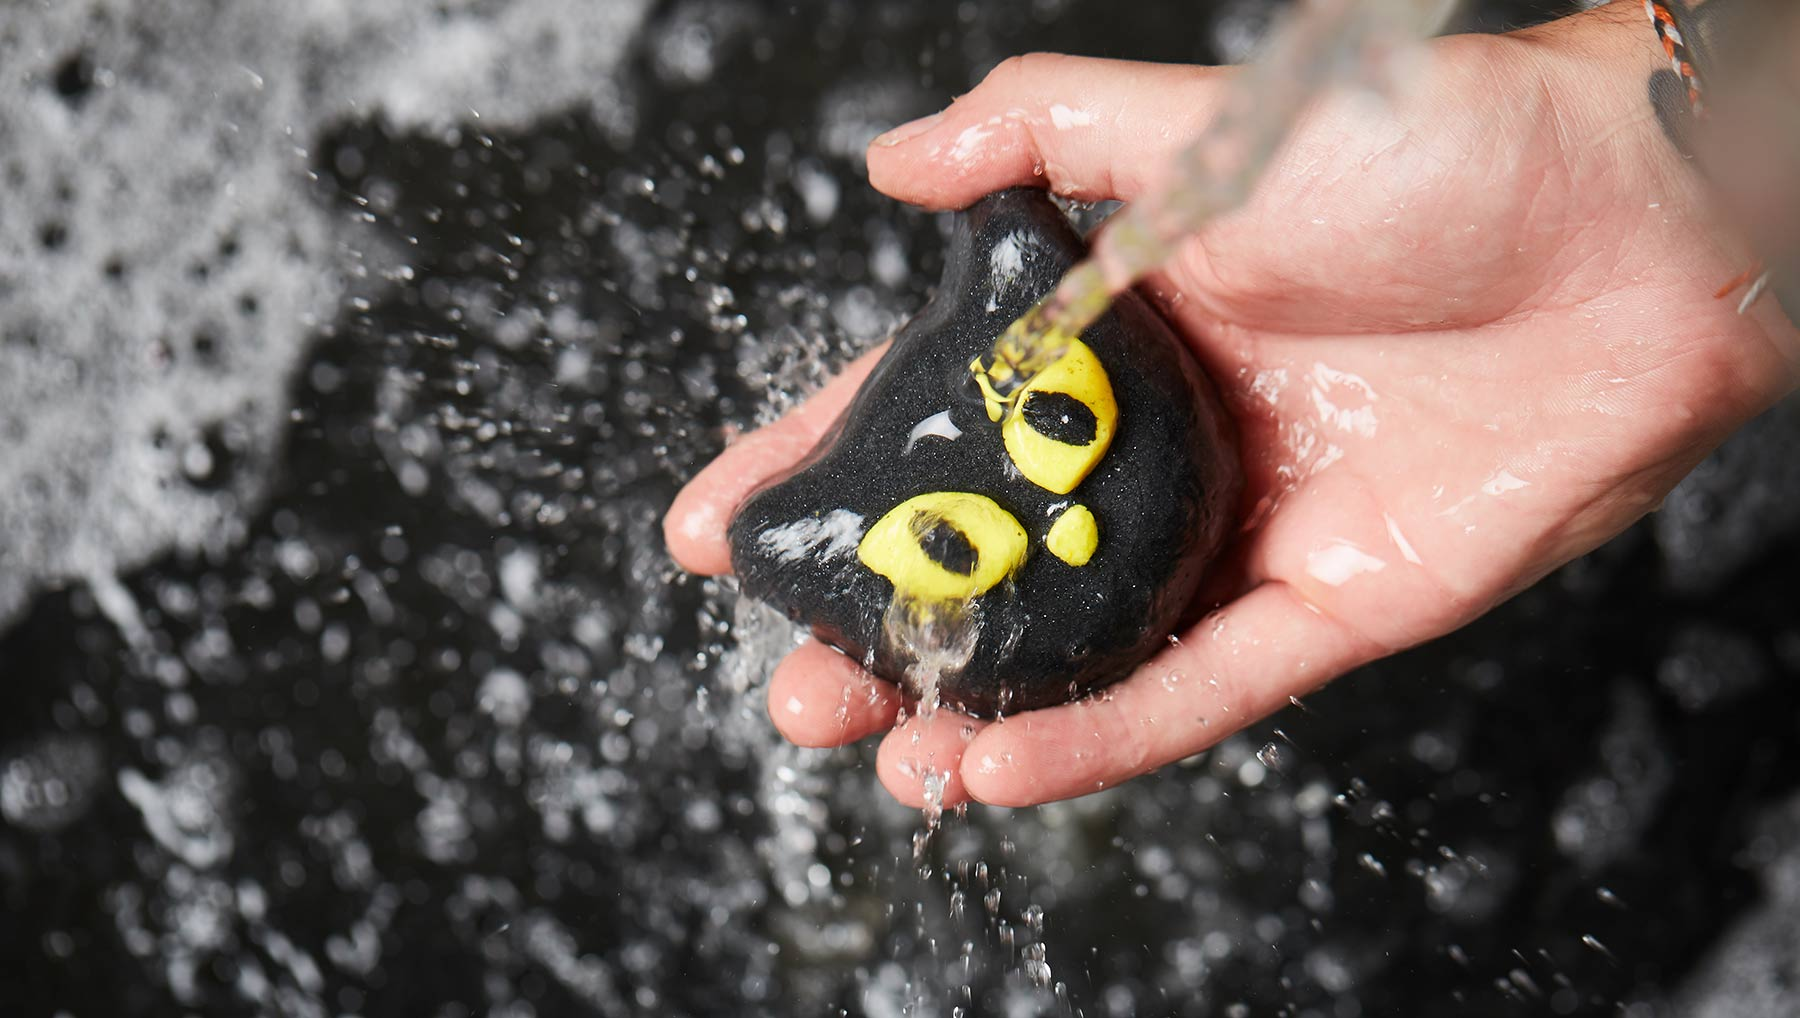 Attention, cat lovers: Lush's black cat-shaped Bewitched Bubble Bar is selling out fast